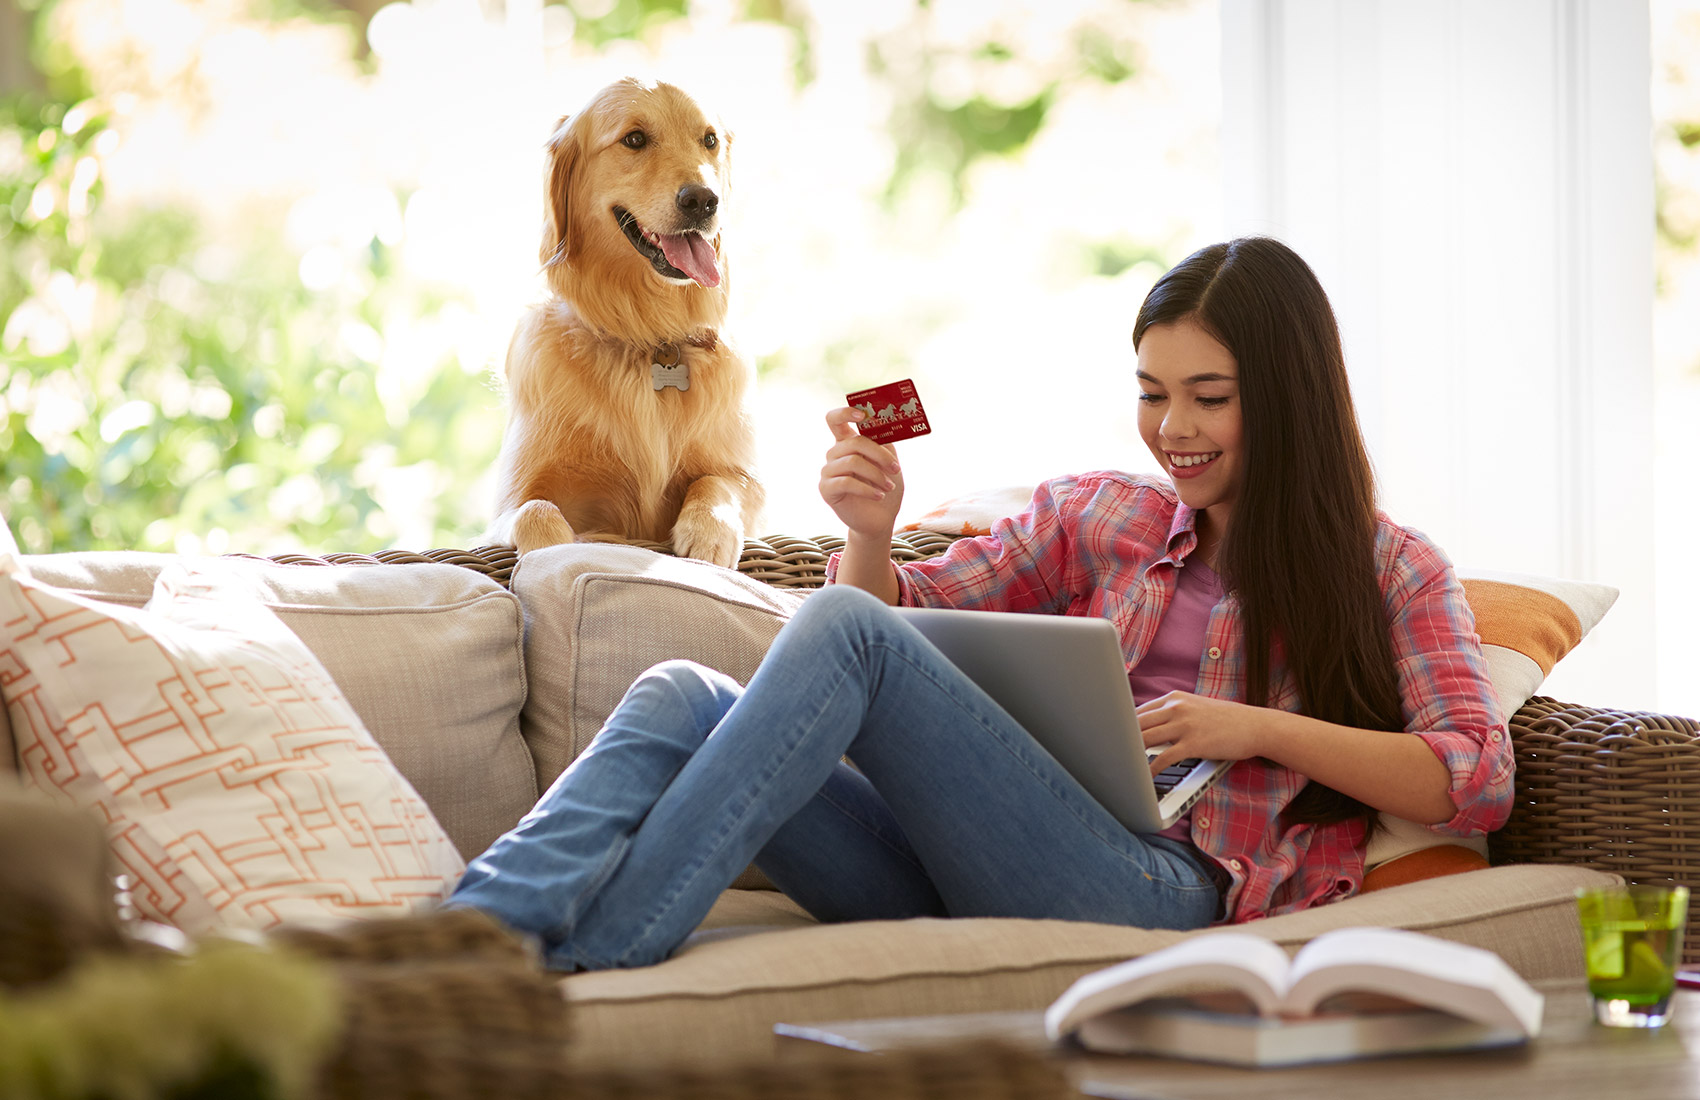 Teen girl sitting on couch and looking at laptop while holding Wells Fargo credit card